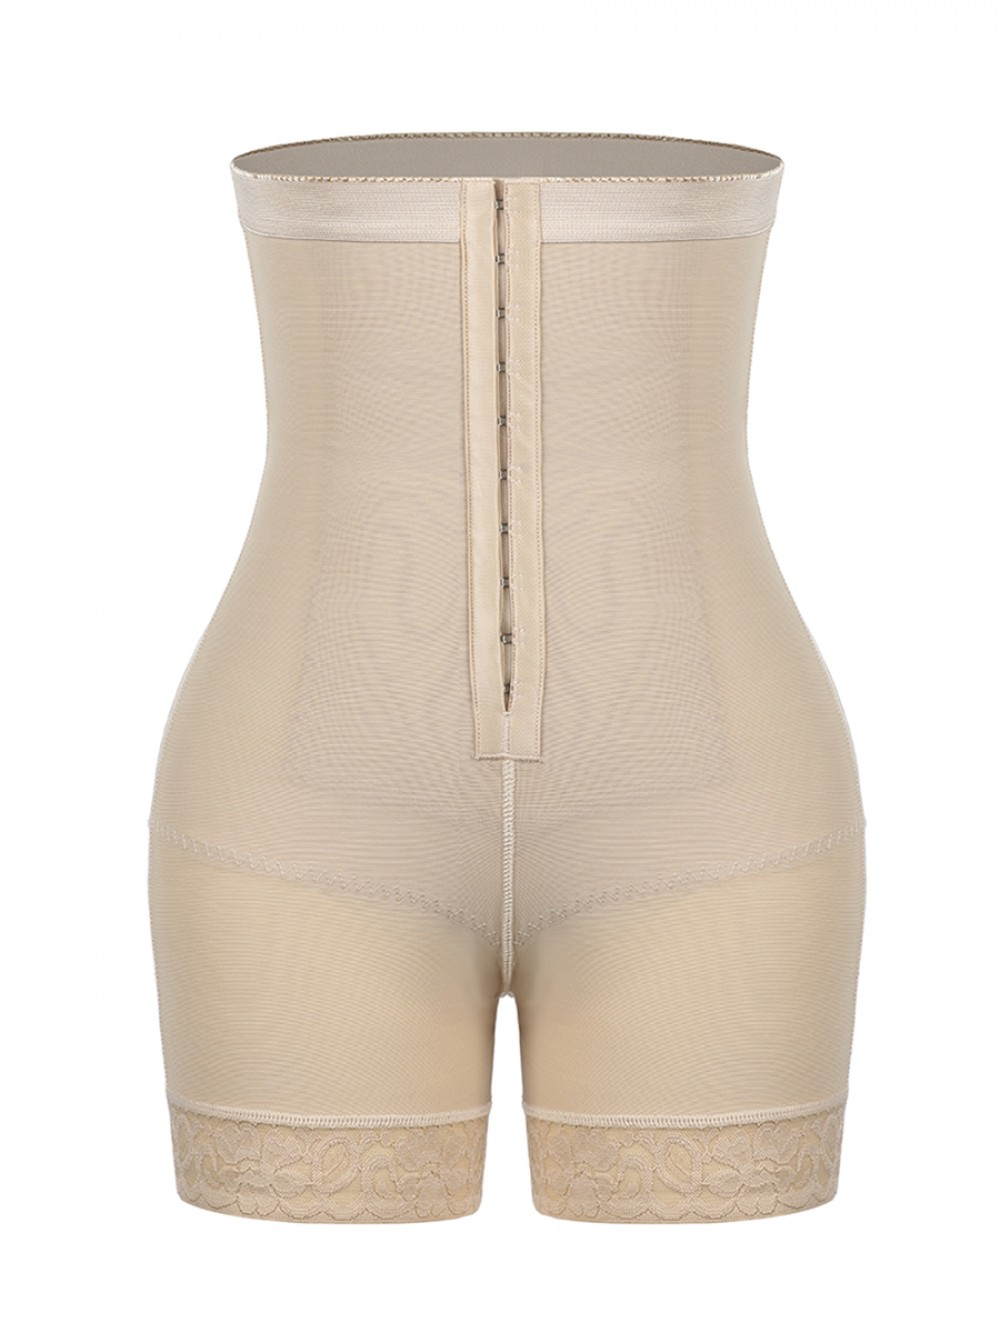 Skin Color High-Waist Tummy Control Shaper Shorts With Pads